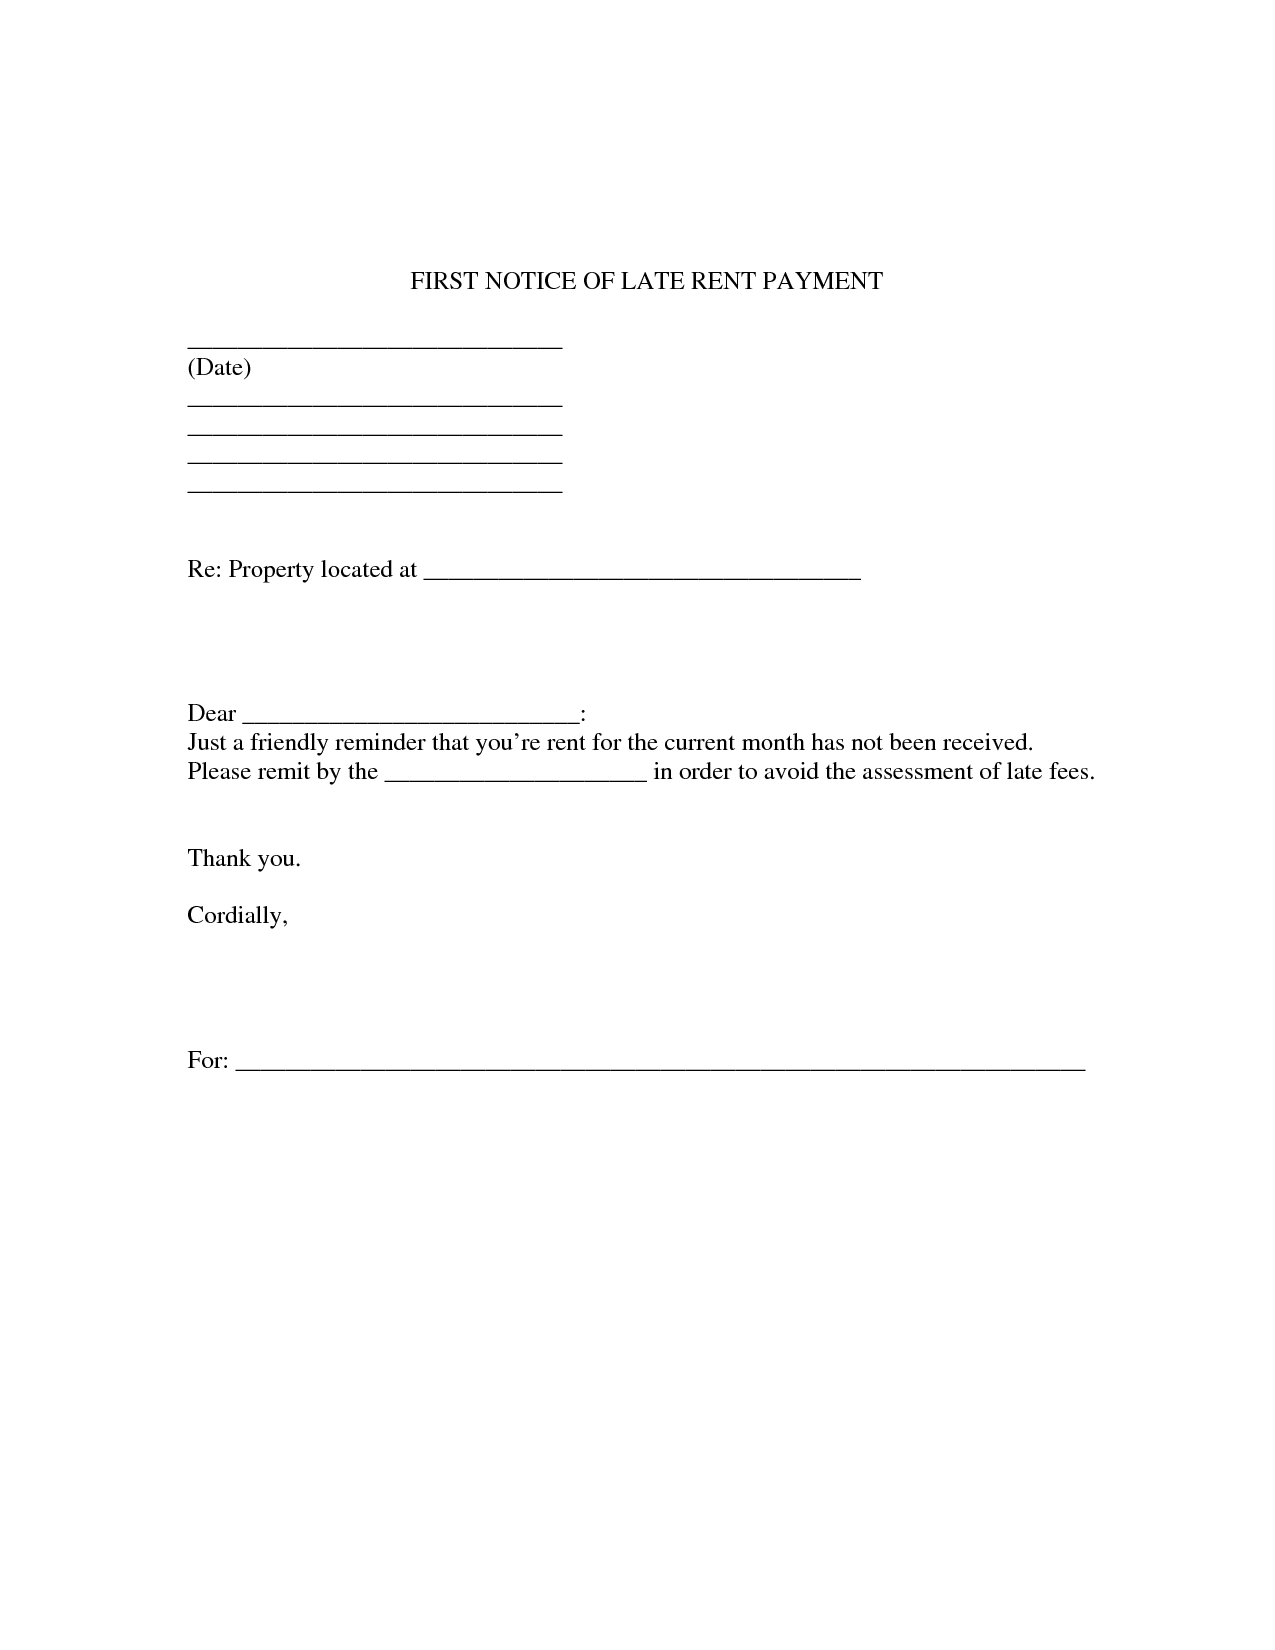 Late Rent Notice Letter Sample Image Gallery ImgGrid late rent – Late Rent Notice Template